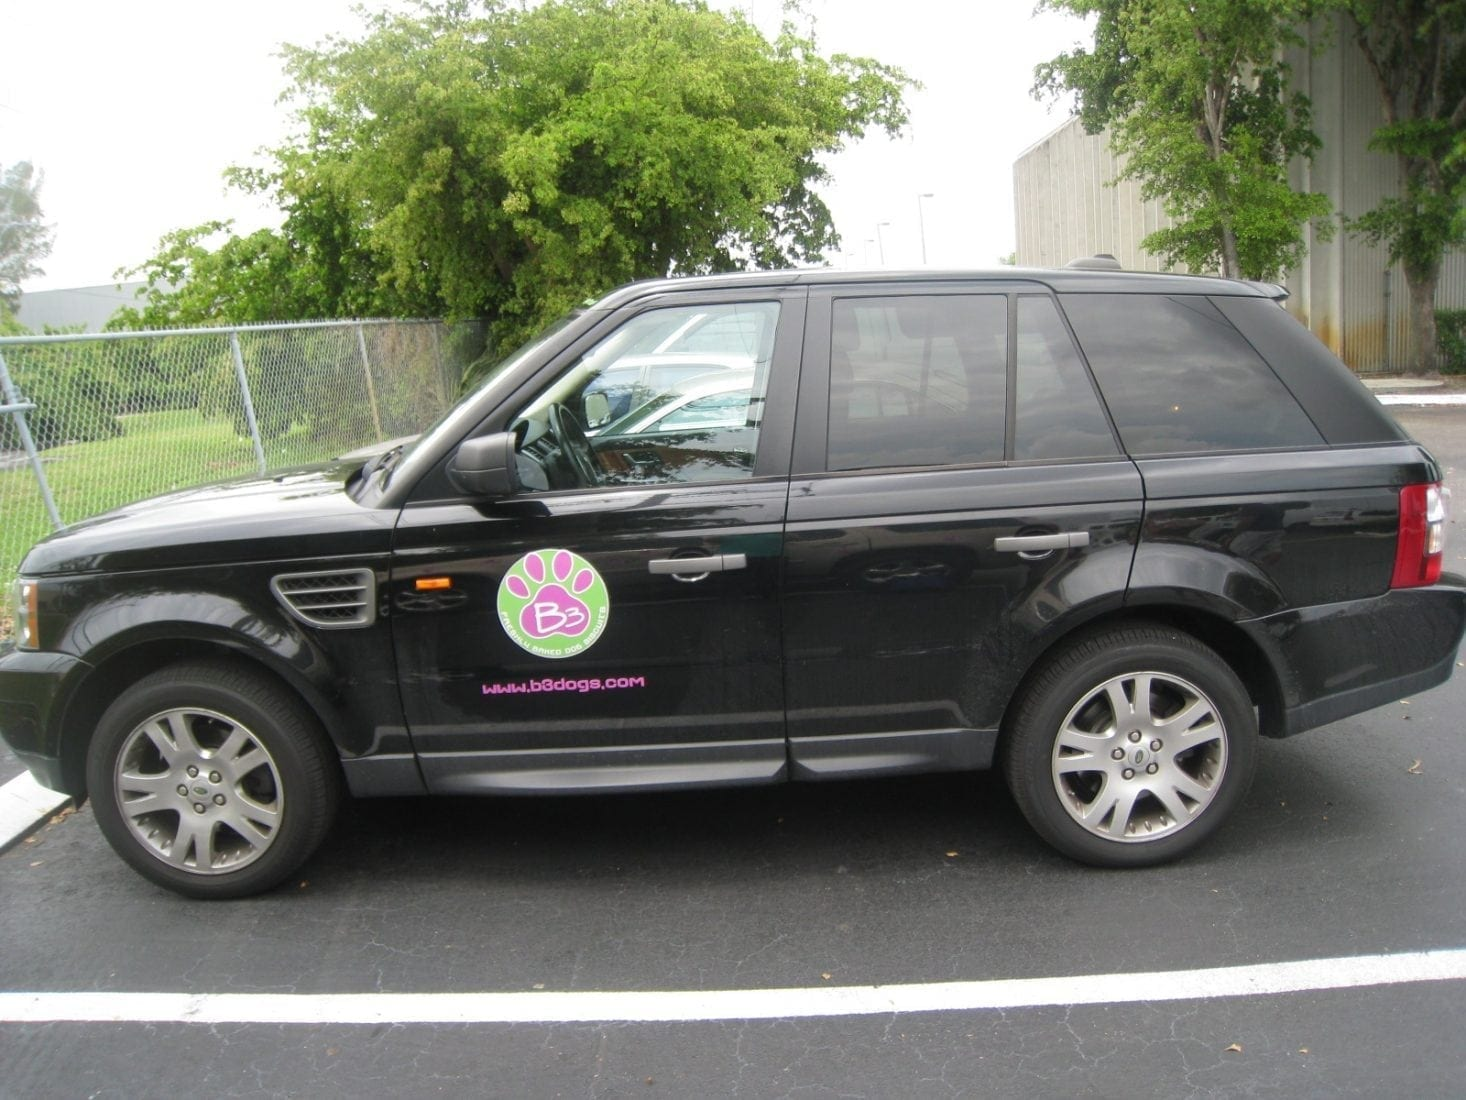 Large Format Die Cut Vinyl Stickers For Vehicles